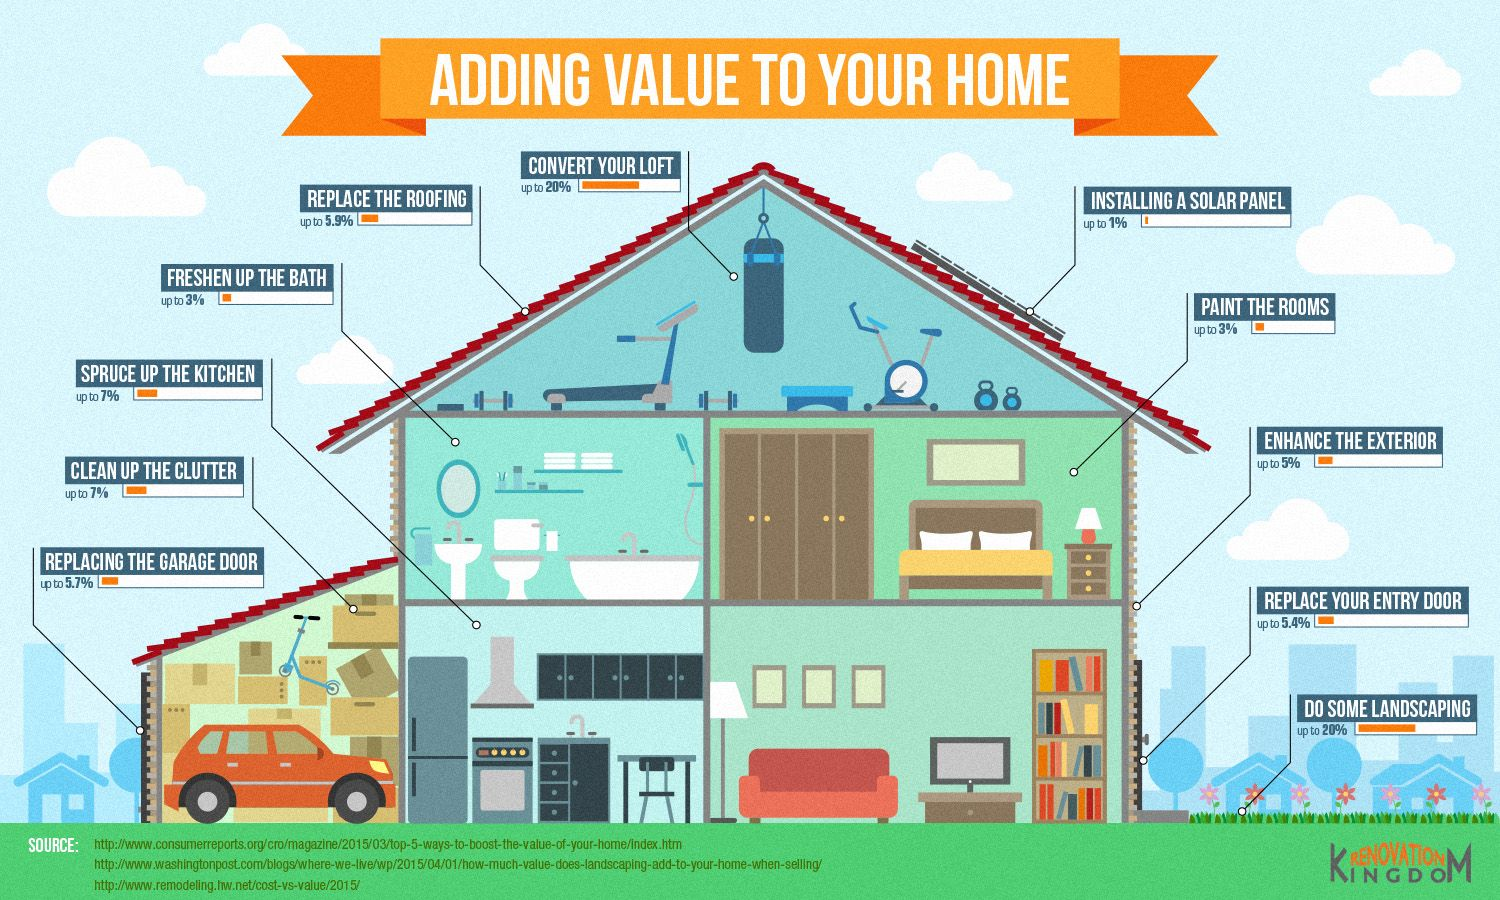 Tips To Add Value Your Home From Roof Entry Door Tipsographic